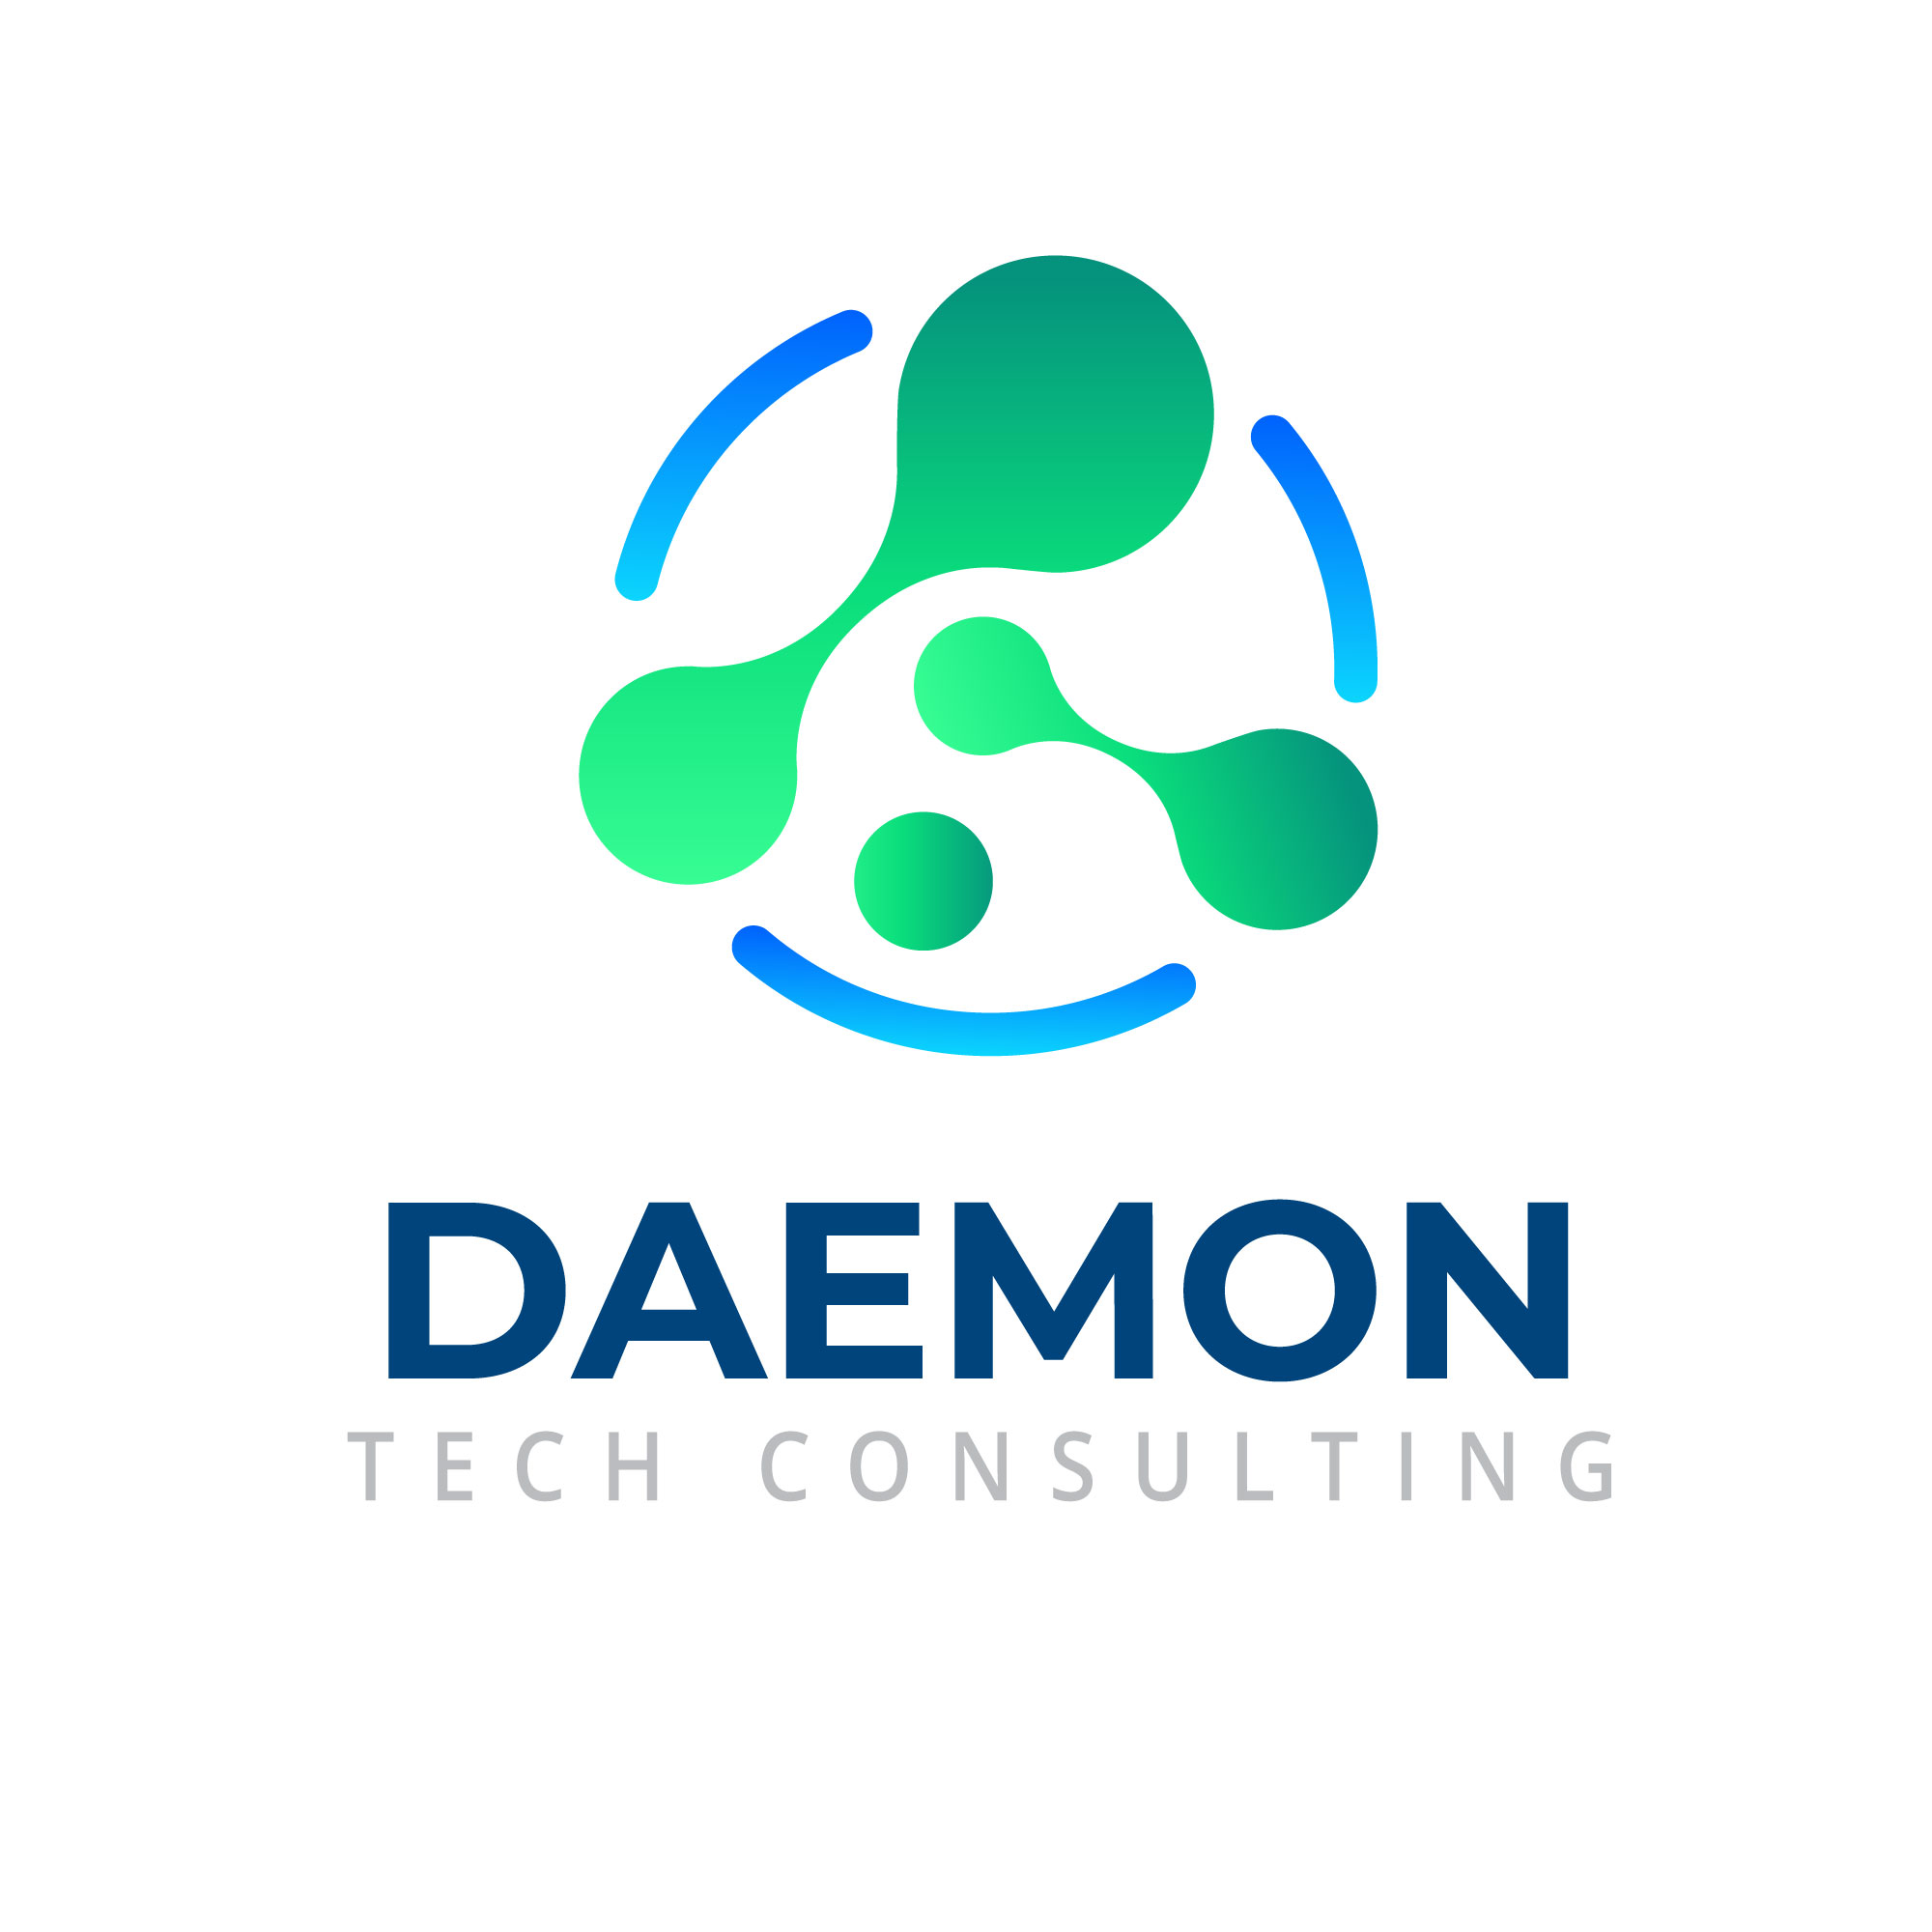 DAEMON Tech Consulting